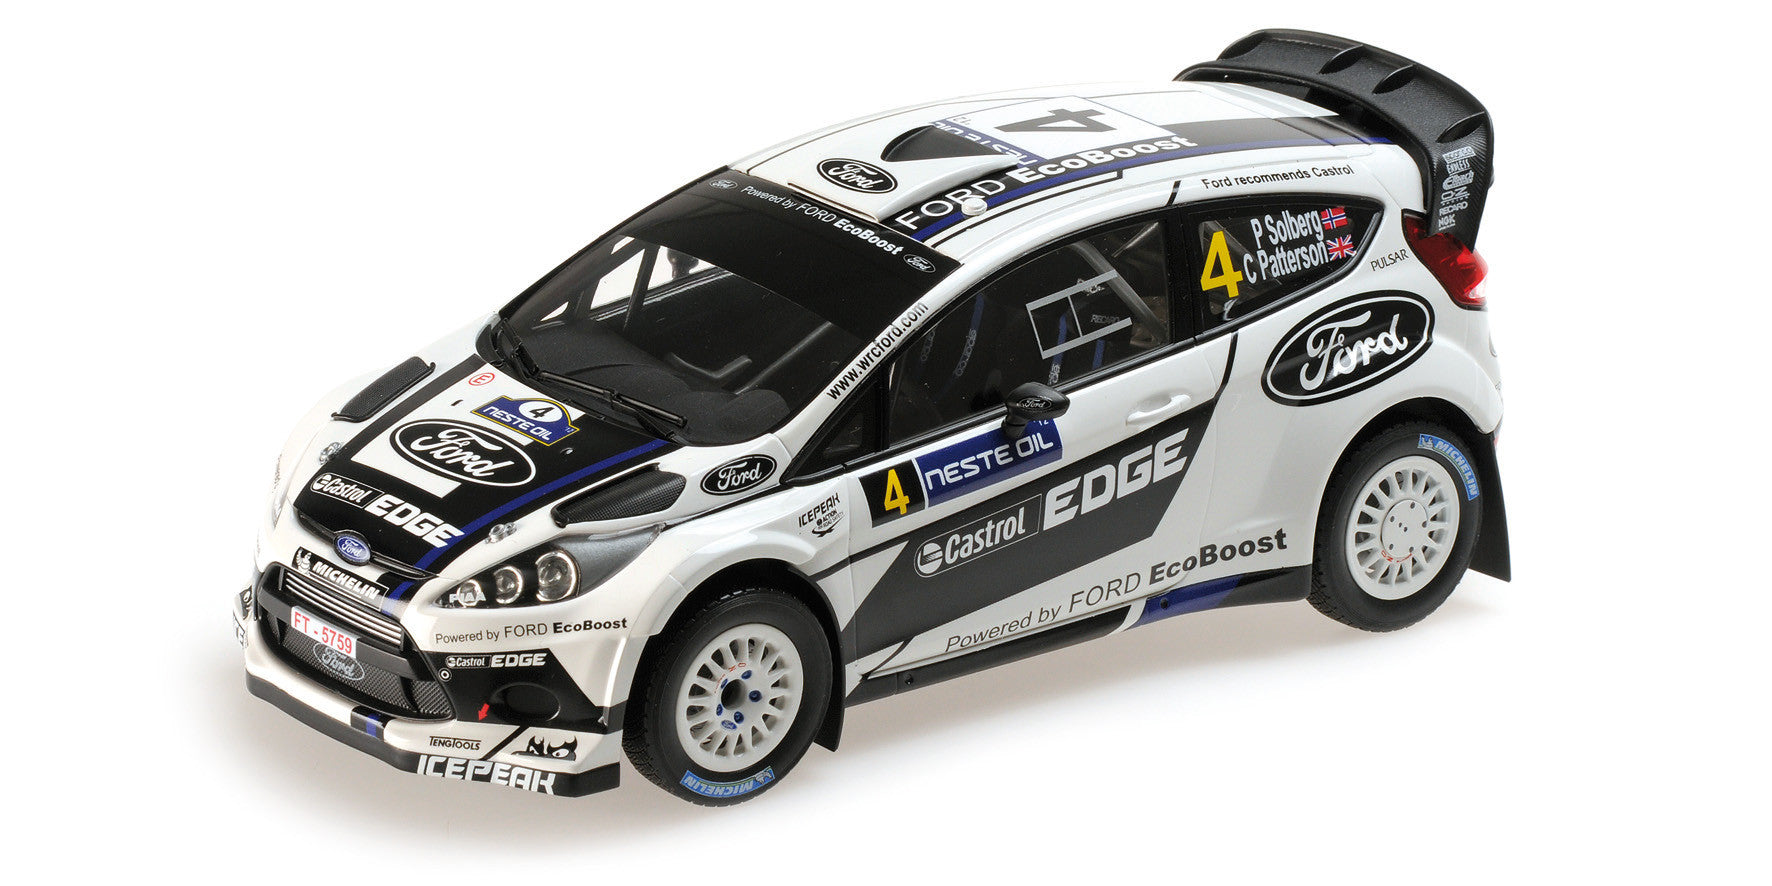 MINICHAMPS 1/18 FORD FIESTA RS WRC RALLY FINLAND 2012 #4 151120804